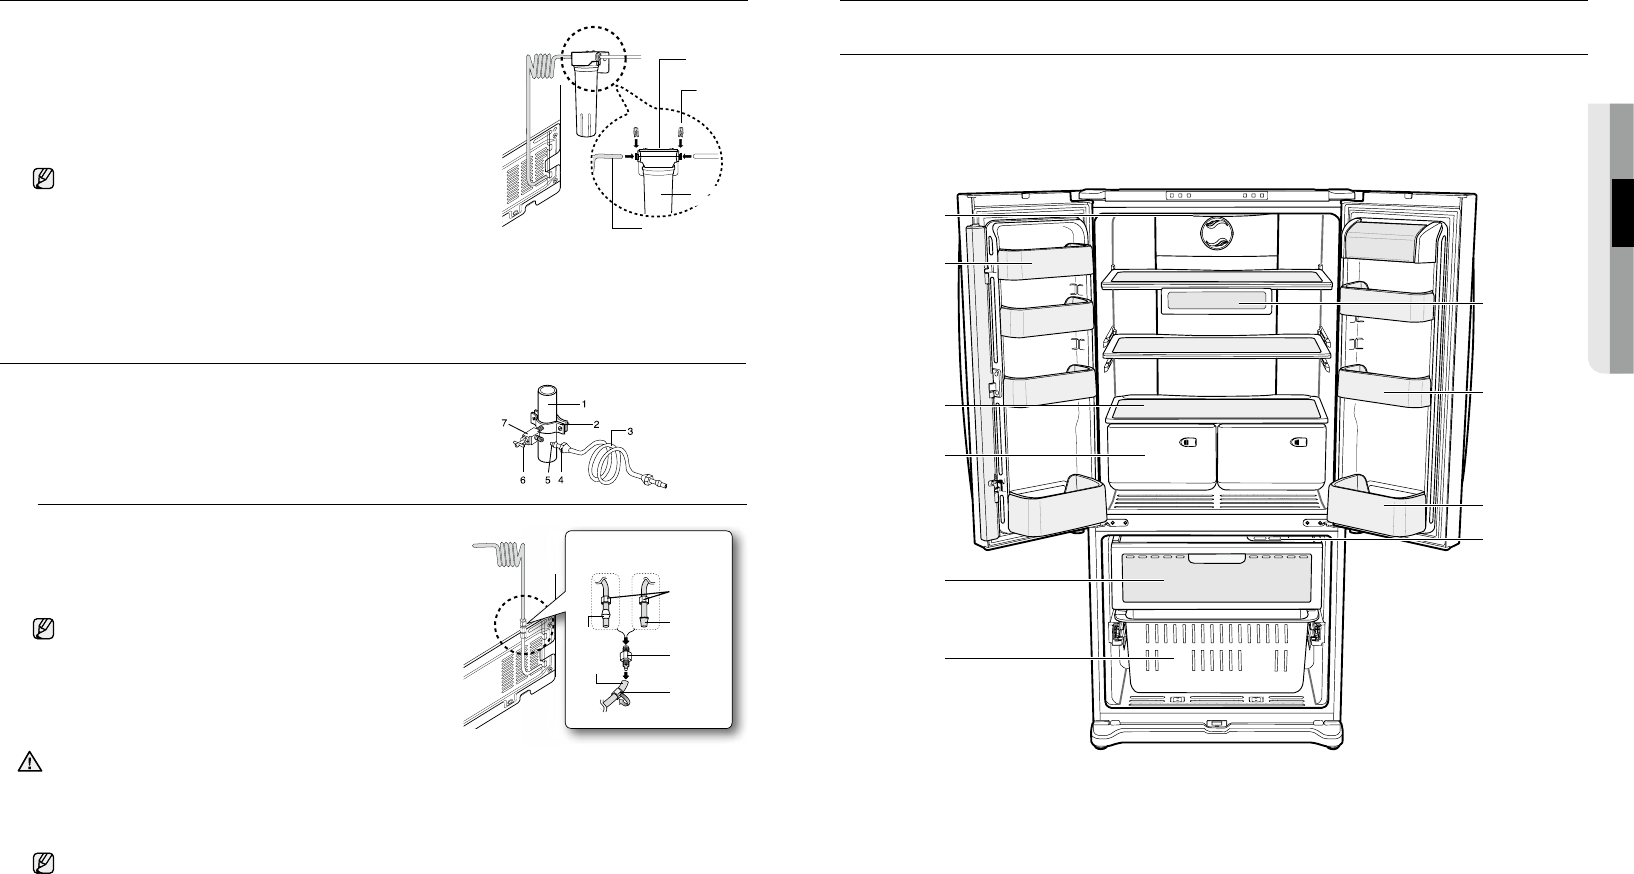 Indesit Fridge Freezer Wiring Diagram moreover Asystat655a Wiring Diagram together with Thermostatic Expansion Valve Txv together with Showthread in addition Bosch Nexxt 500 Series Dryer Thermostat. on filtrete thermostat